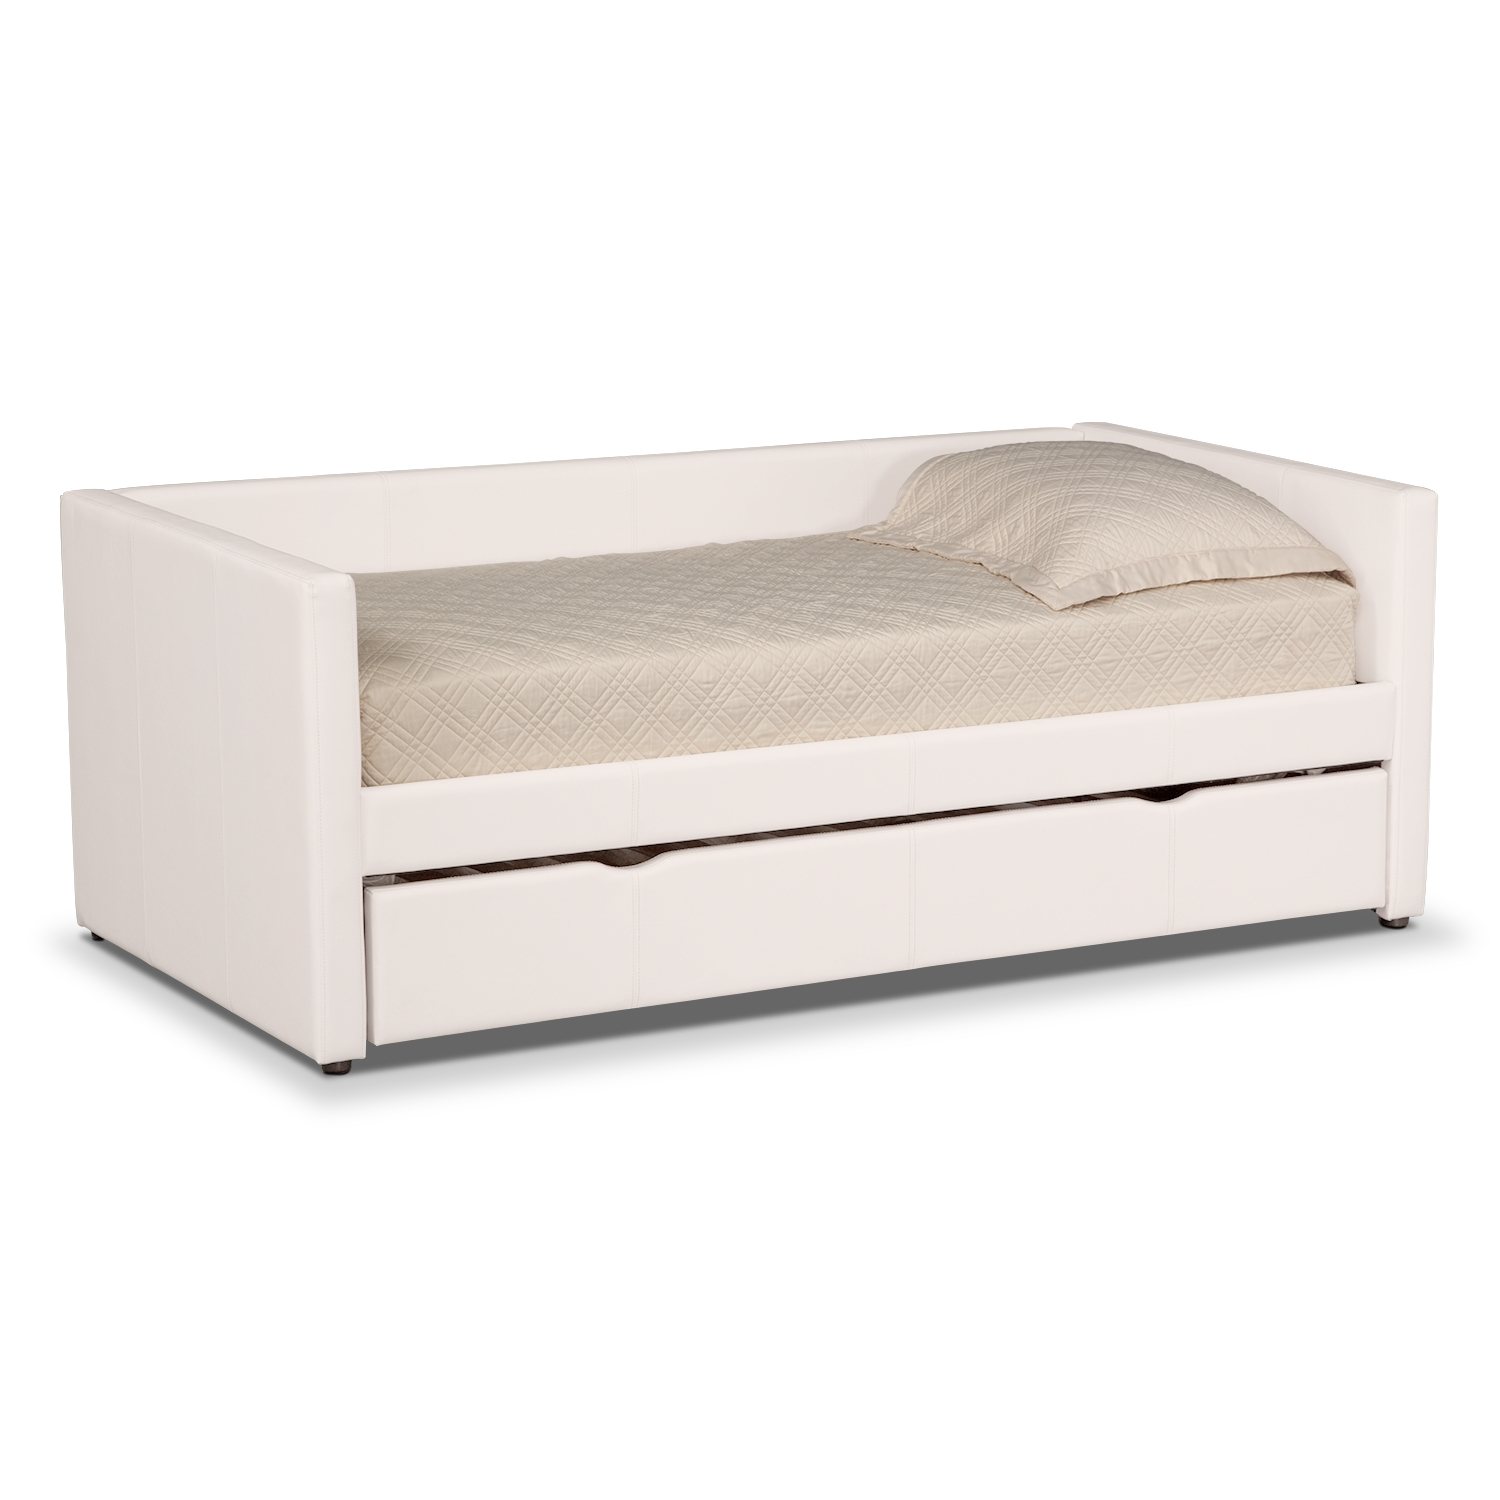 Daybed Couch | Full Size Daybed with Trundle | Full Size Daybed with Trundle